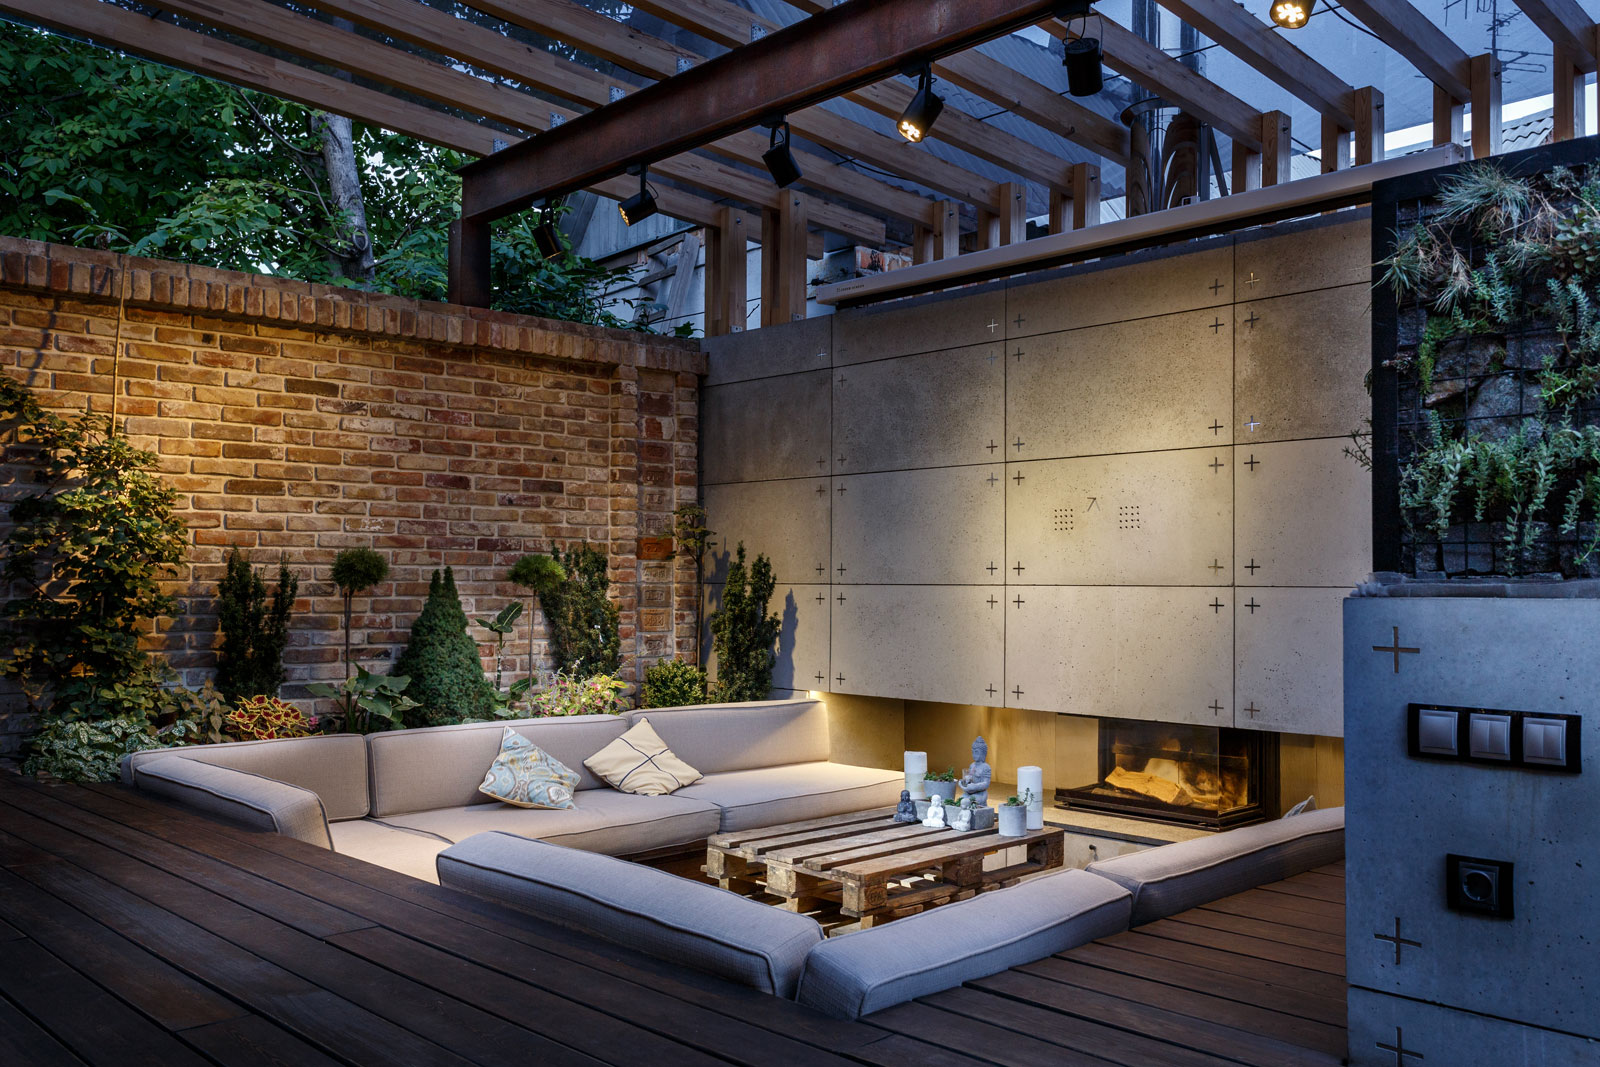 Contemporary Compact Courtyard of Lounge Zone by SVOYA studio-22